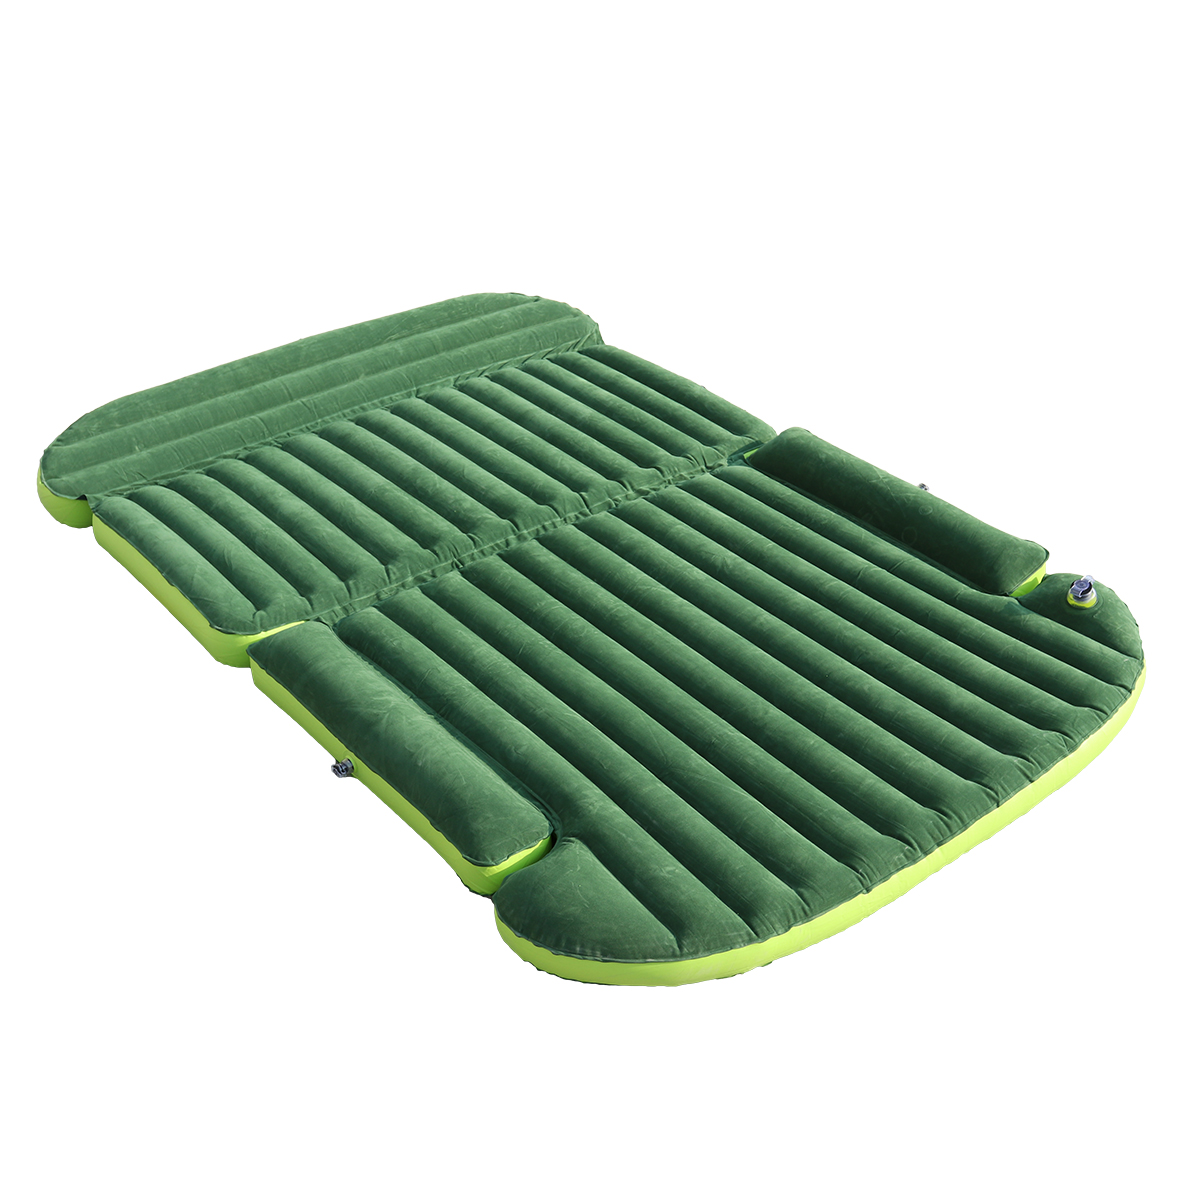 Car Travel Inflatable Mattress SUV Bed Camping Back Seat Extended Mattress PVC Flocking car travel inflatable mattress car inflatable bed suv back seat extended mattress with repair pad glue kits air pump for travel